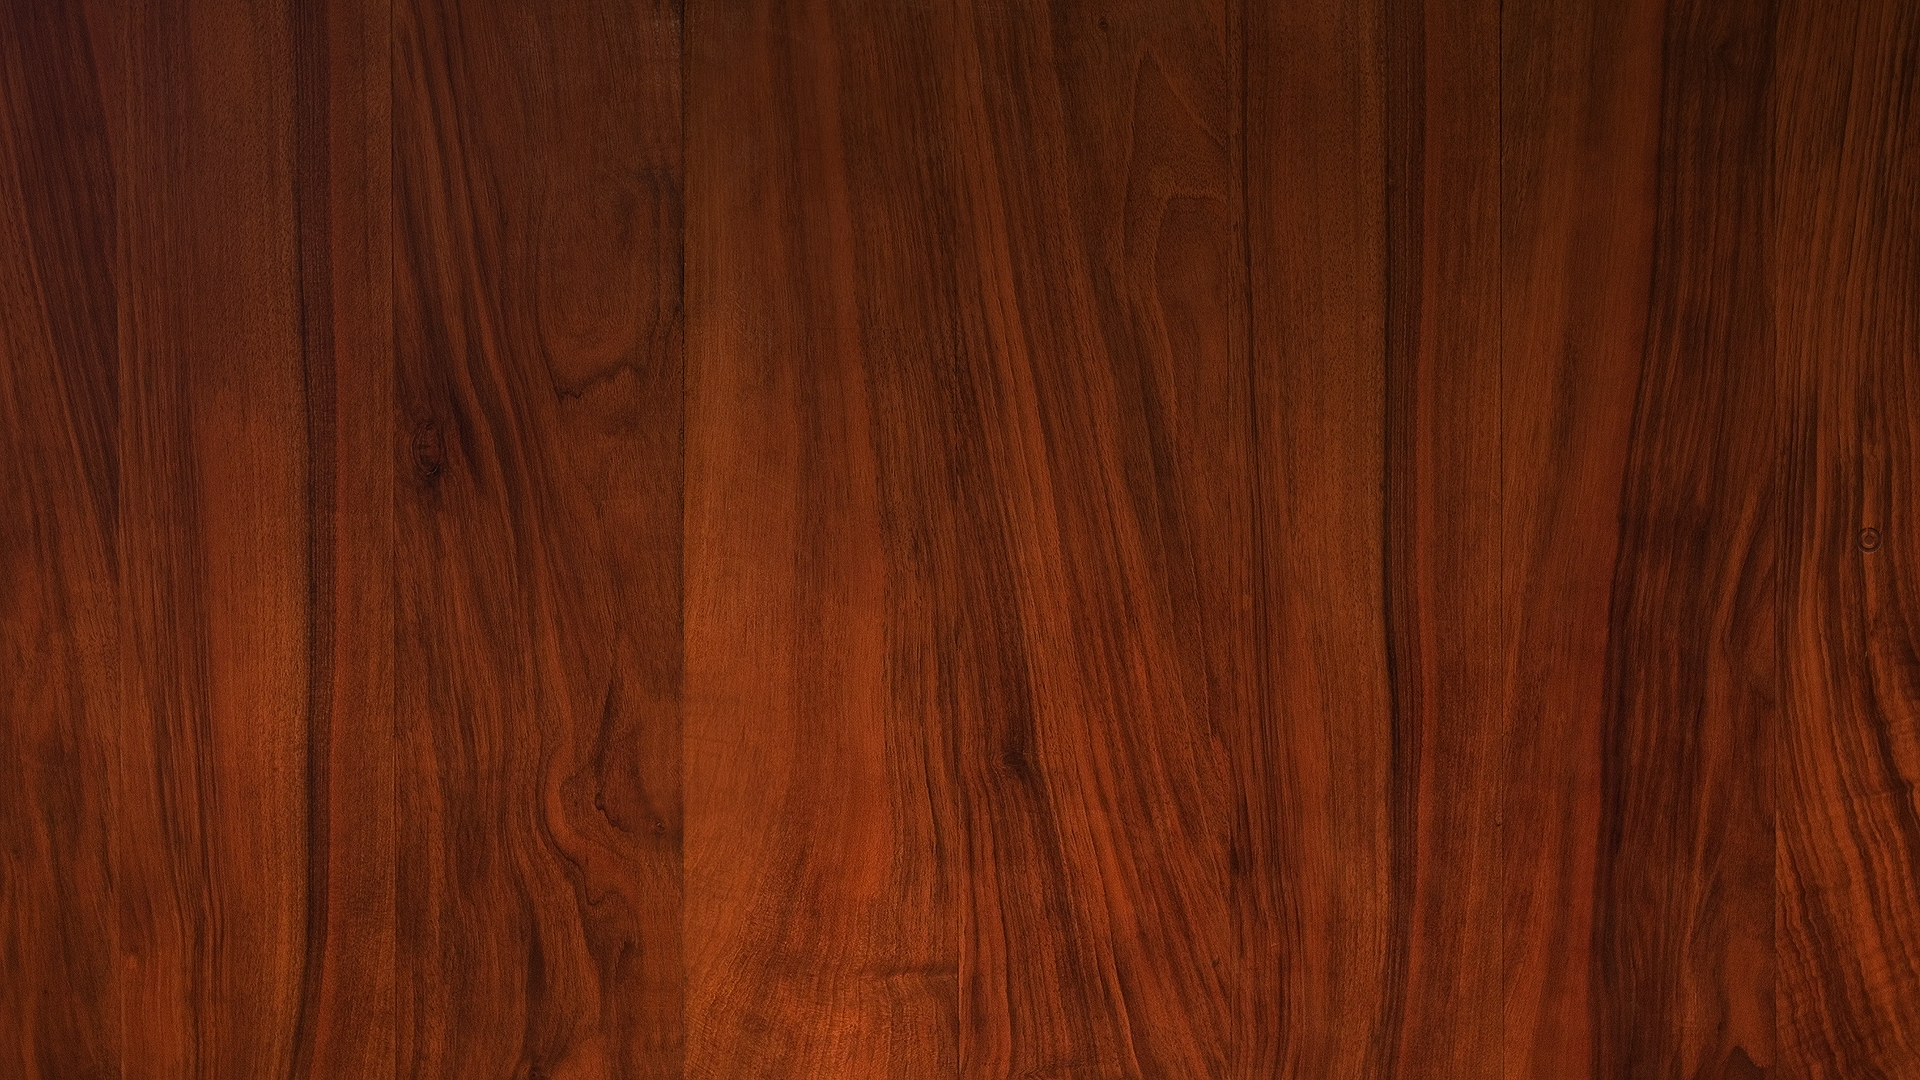 Simple Wallpaper Android Wood - Wood-Wallpaper-For-Android  You Should Have_262934      .jpg